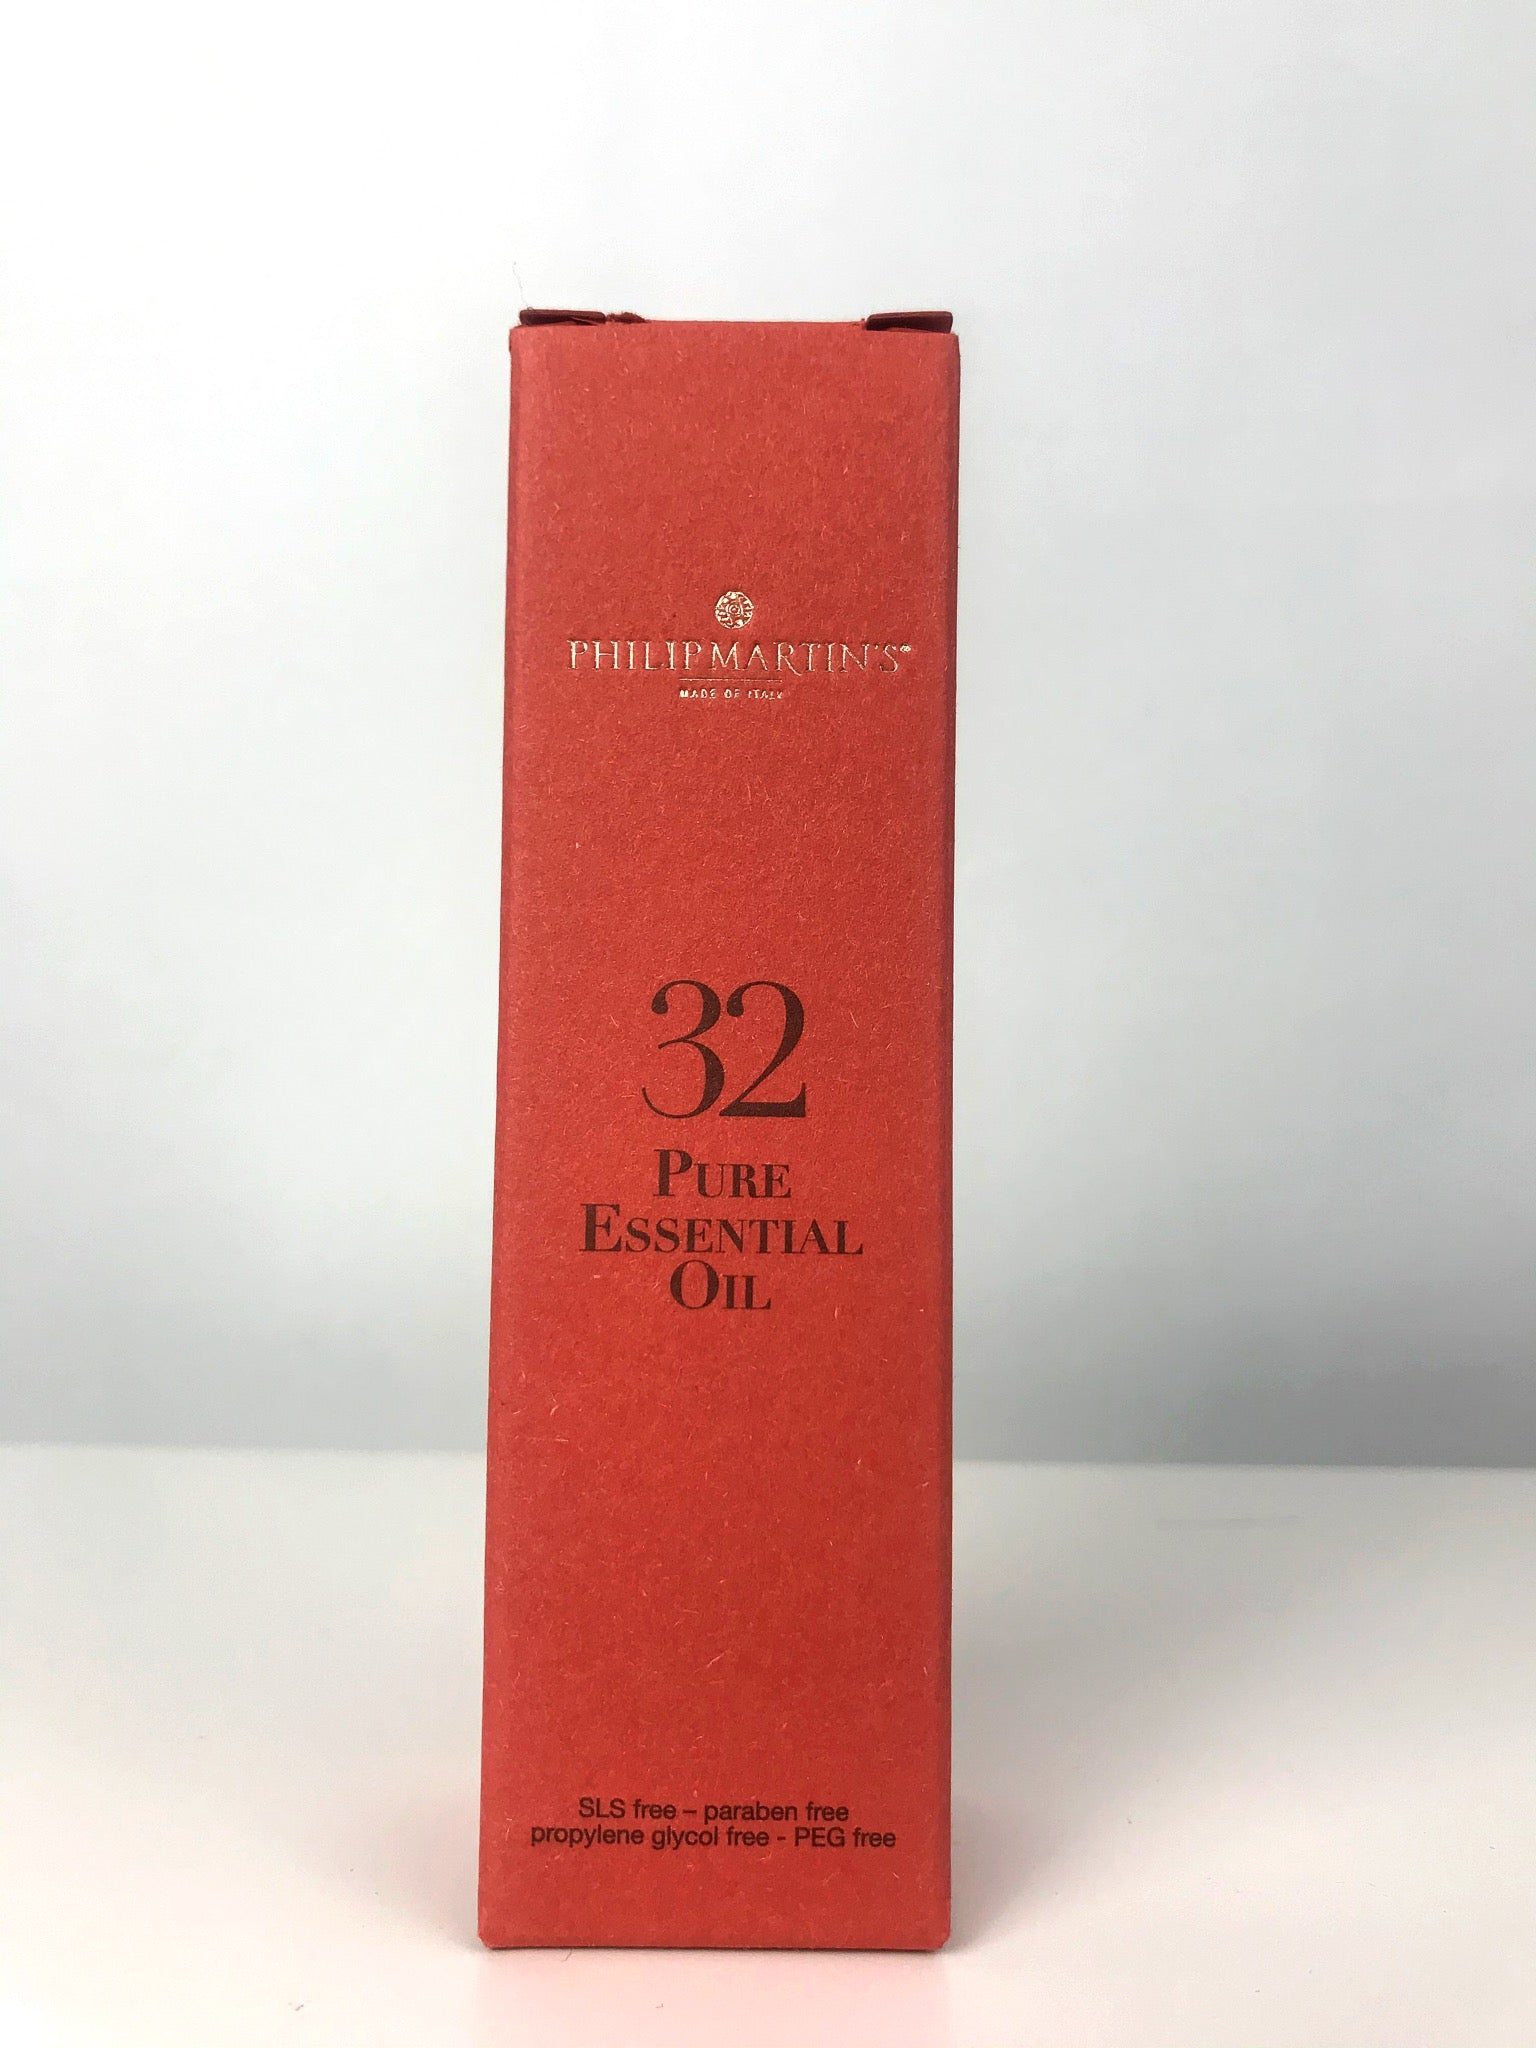 Philip Martin's 32 Pure Essential Oil